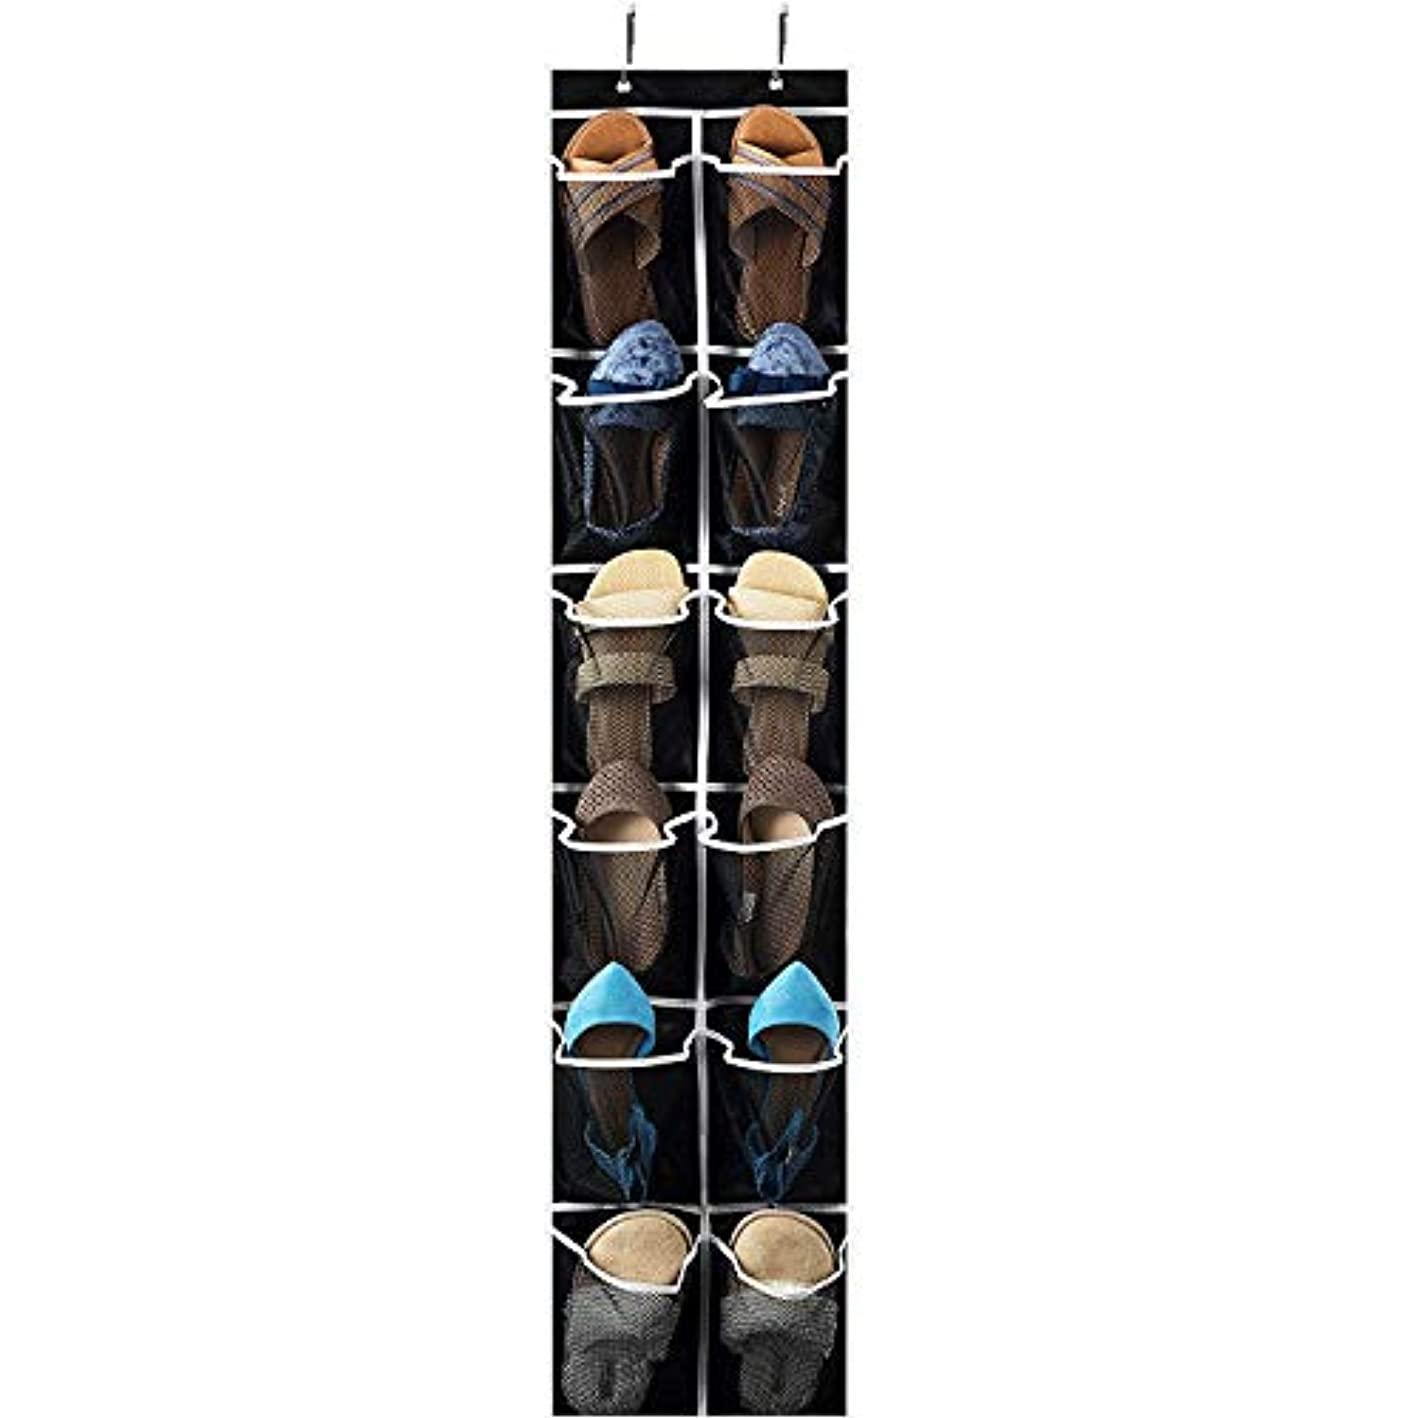 """Over the Door Shoe Organizer 2 Pack - 12 Mesh Pockets, Space Saving Hanging Shoe Holder for Maximizing Shoe Storage, Accessories, Toiletries, Etc. No Assembly Required, Organizer for Shoes 57?"""" x 12"""" ygktvg3772255"""